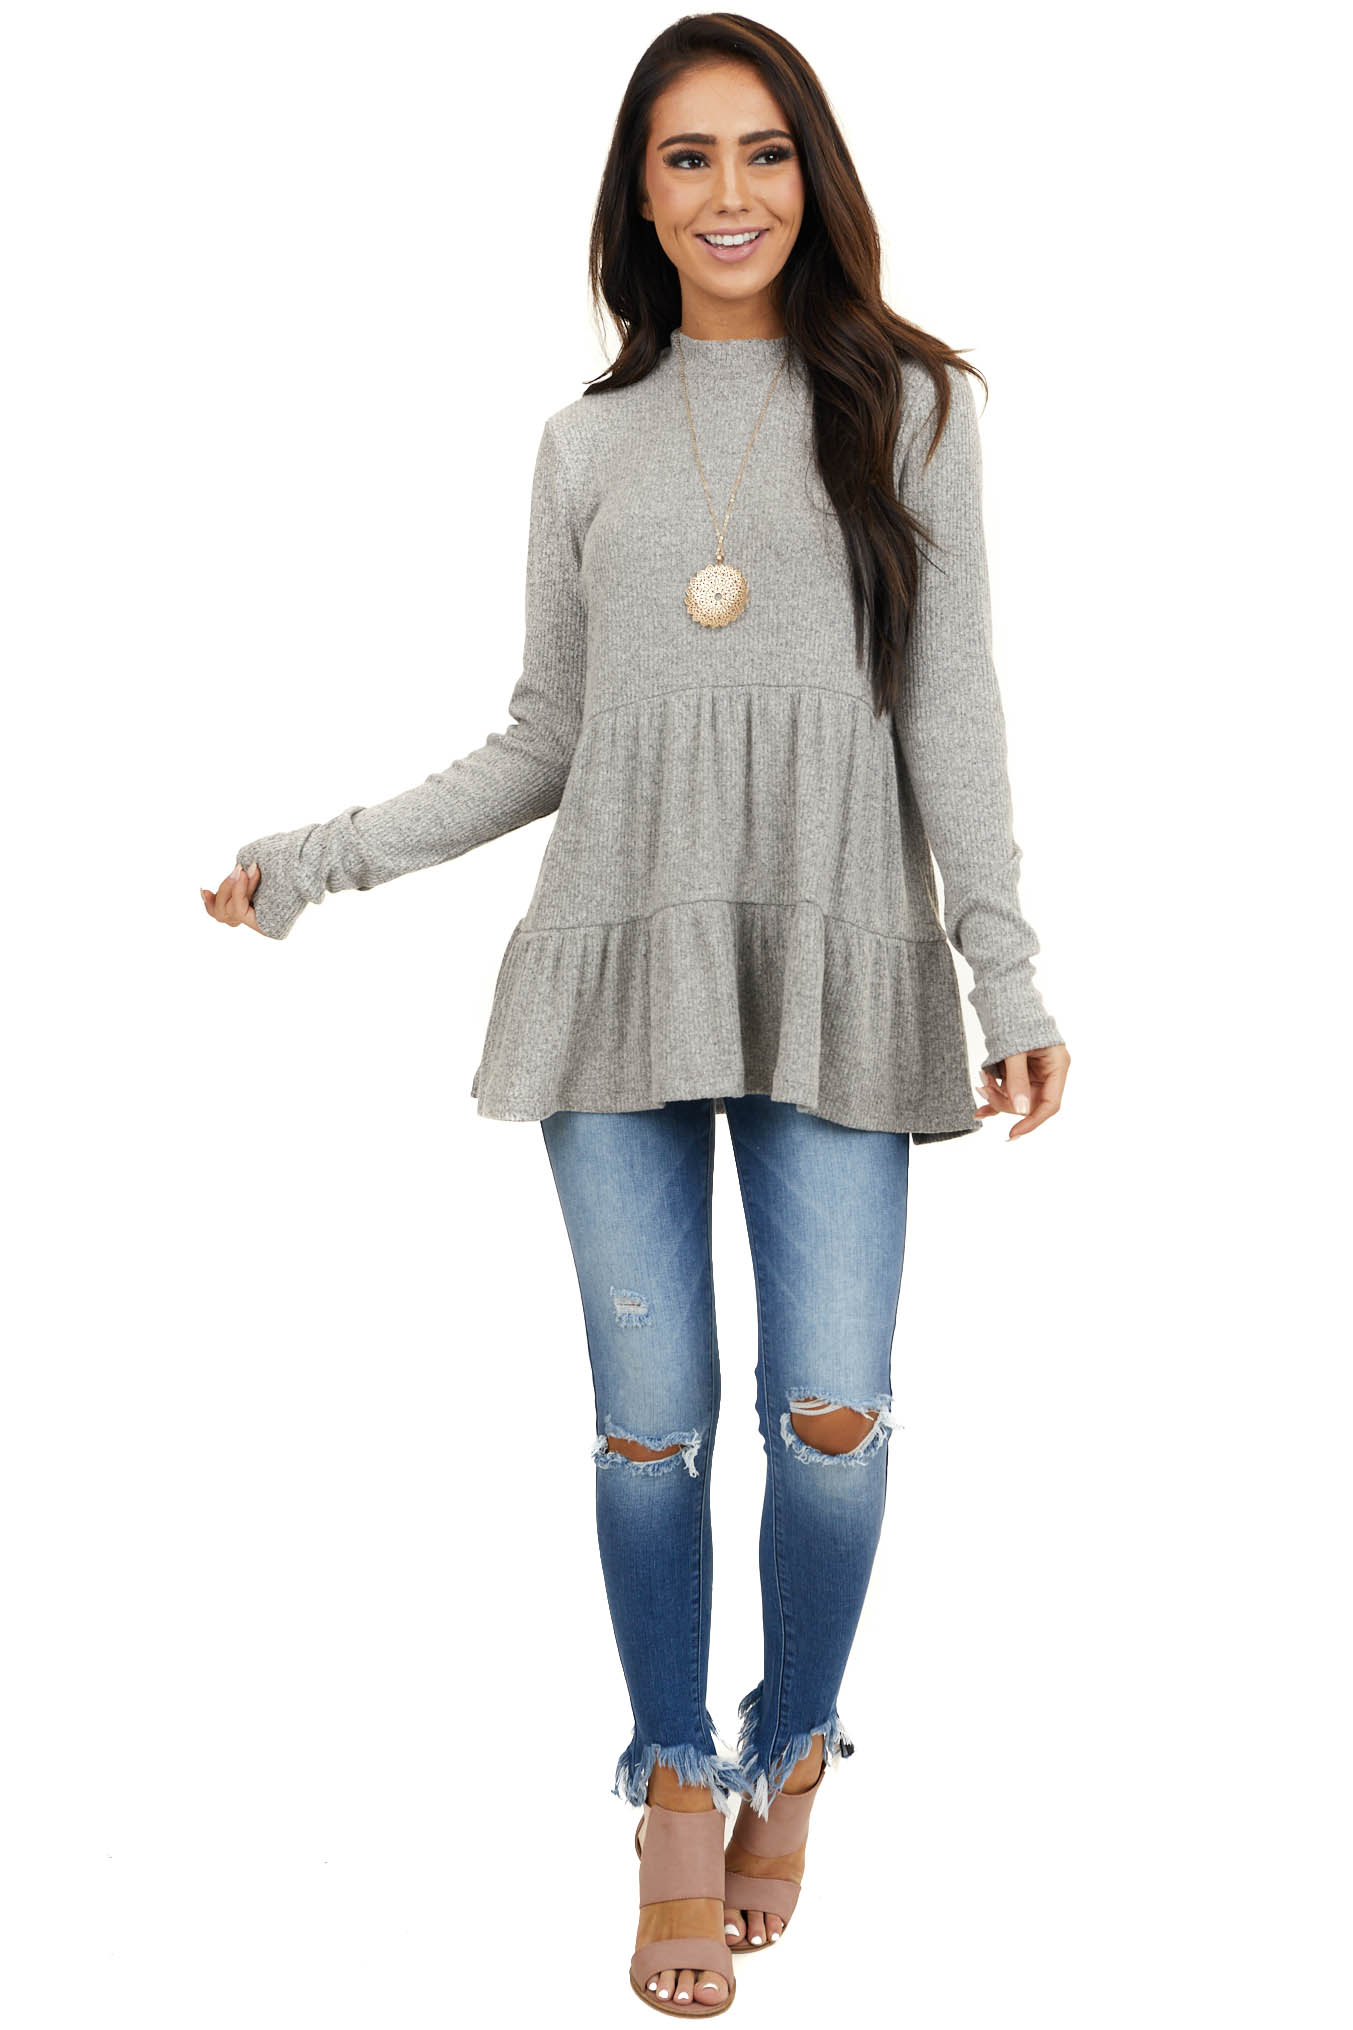 Heathered Light Grey Mock Neck Knit Top with Long Sleeves